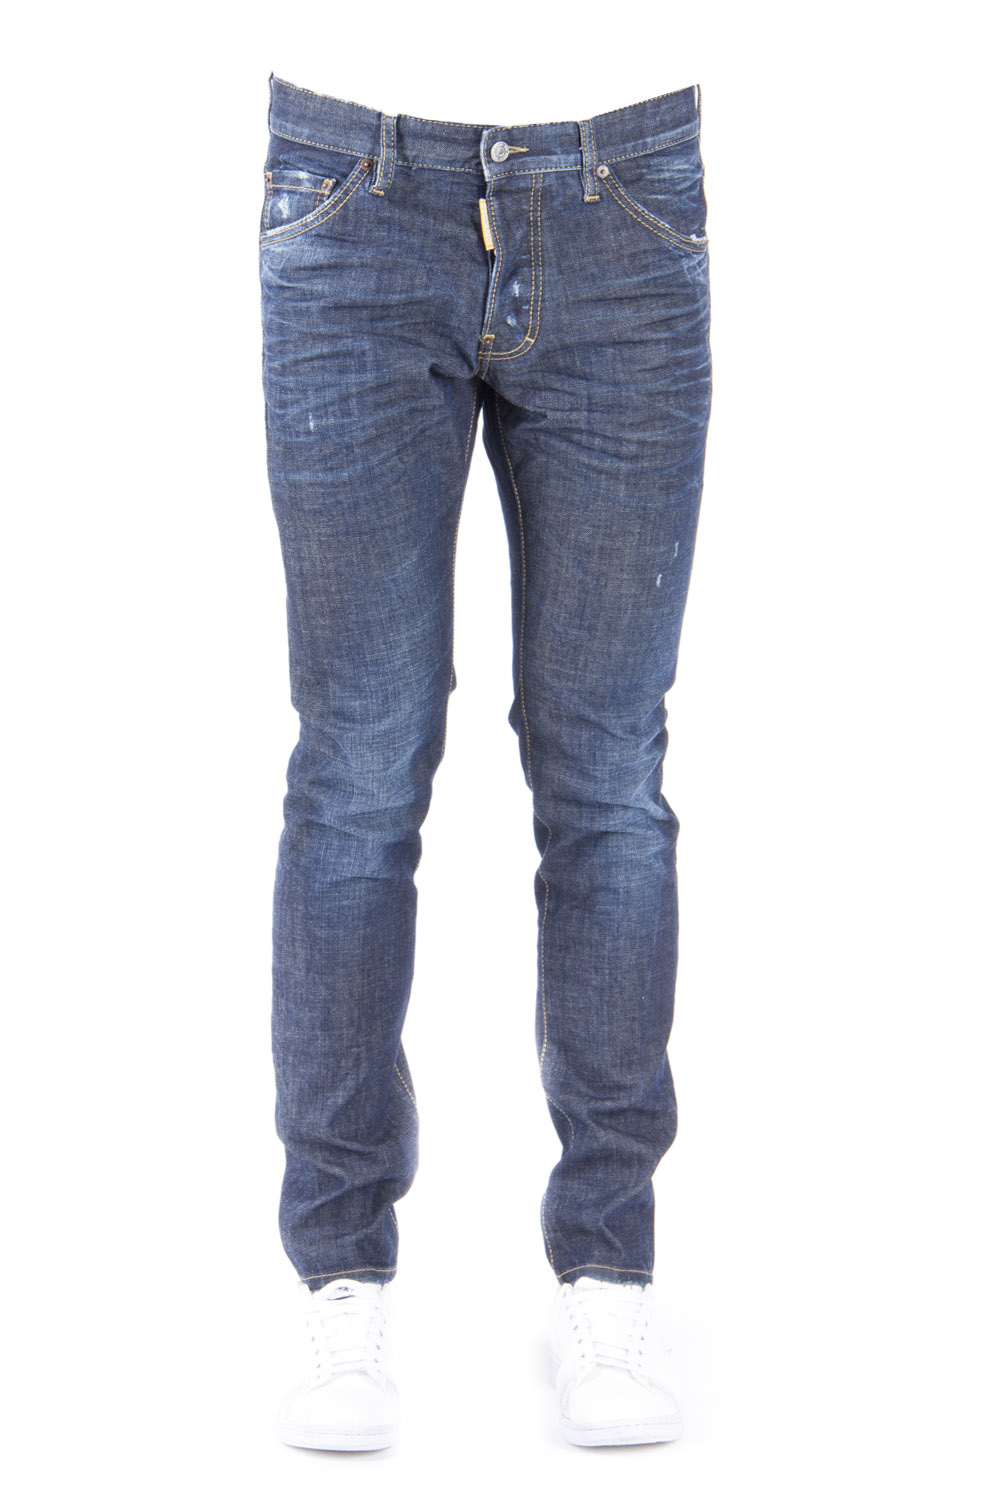 COOL GUY COTTON DENIM JEANS SS 2016 - DSQUARED2 - Boutique Galiano 0fc2fd07a02f